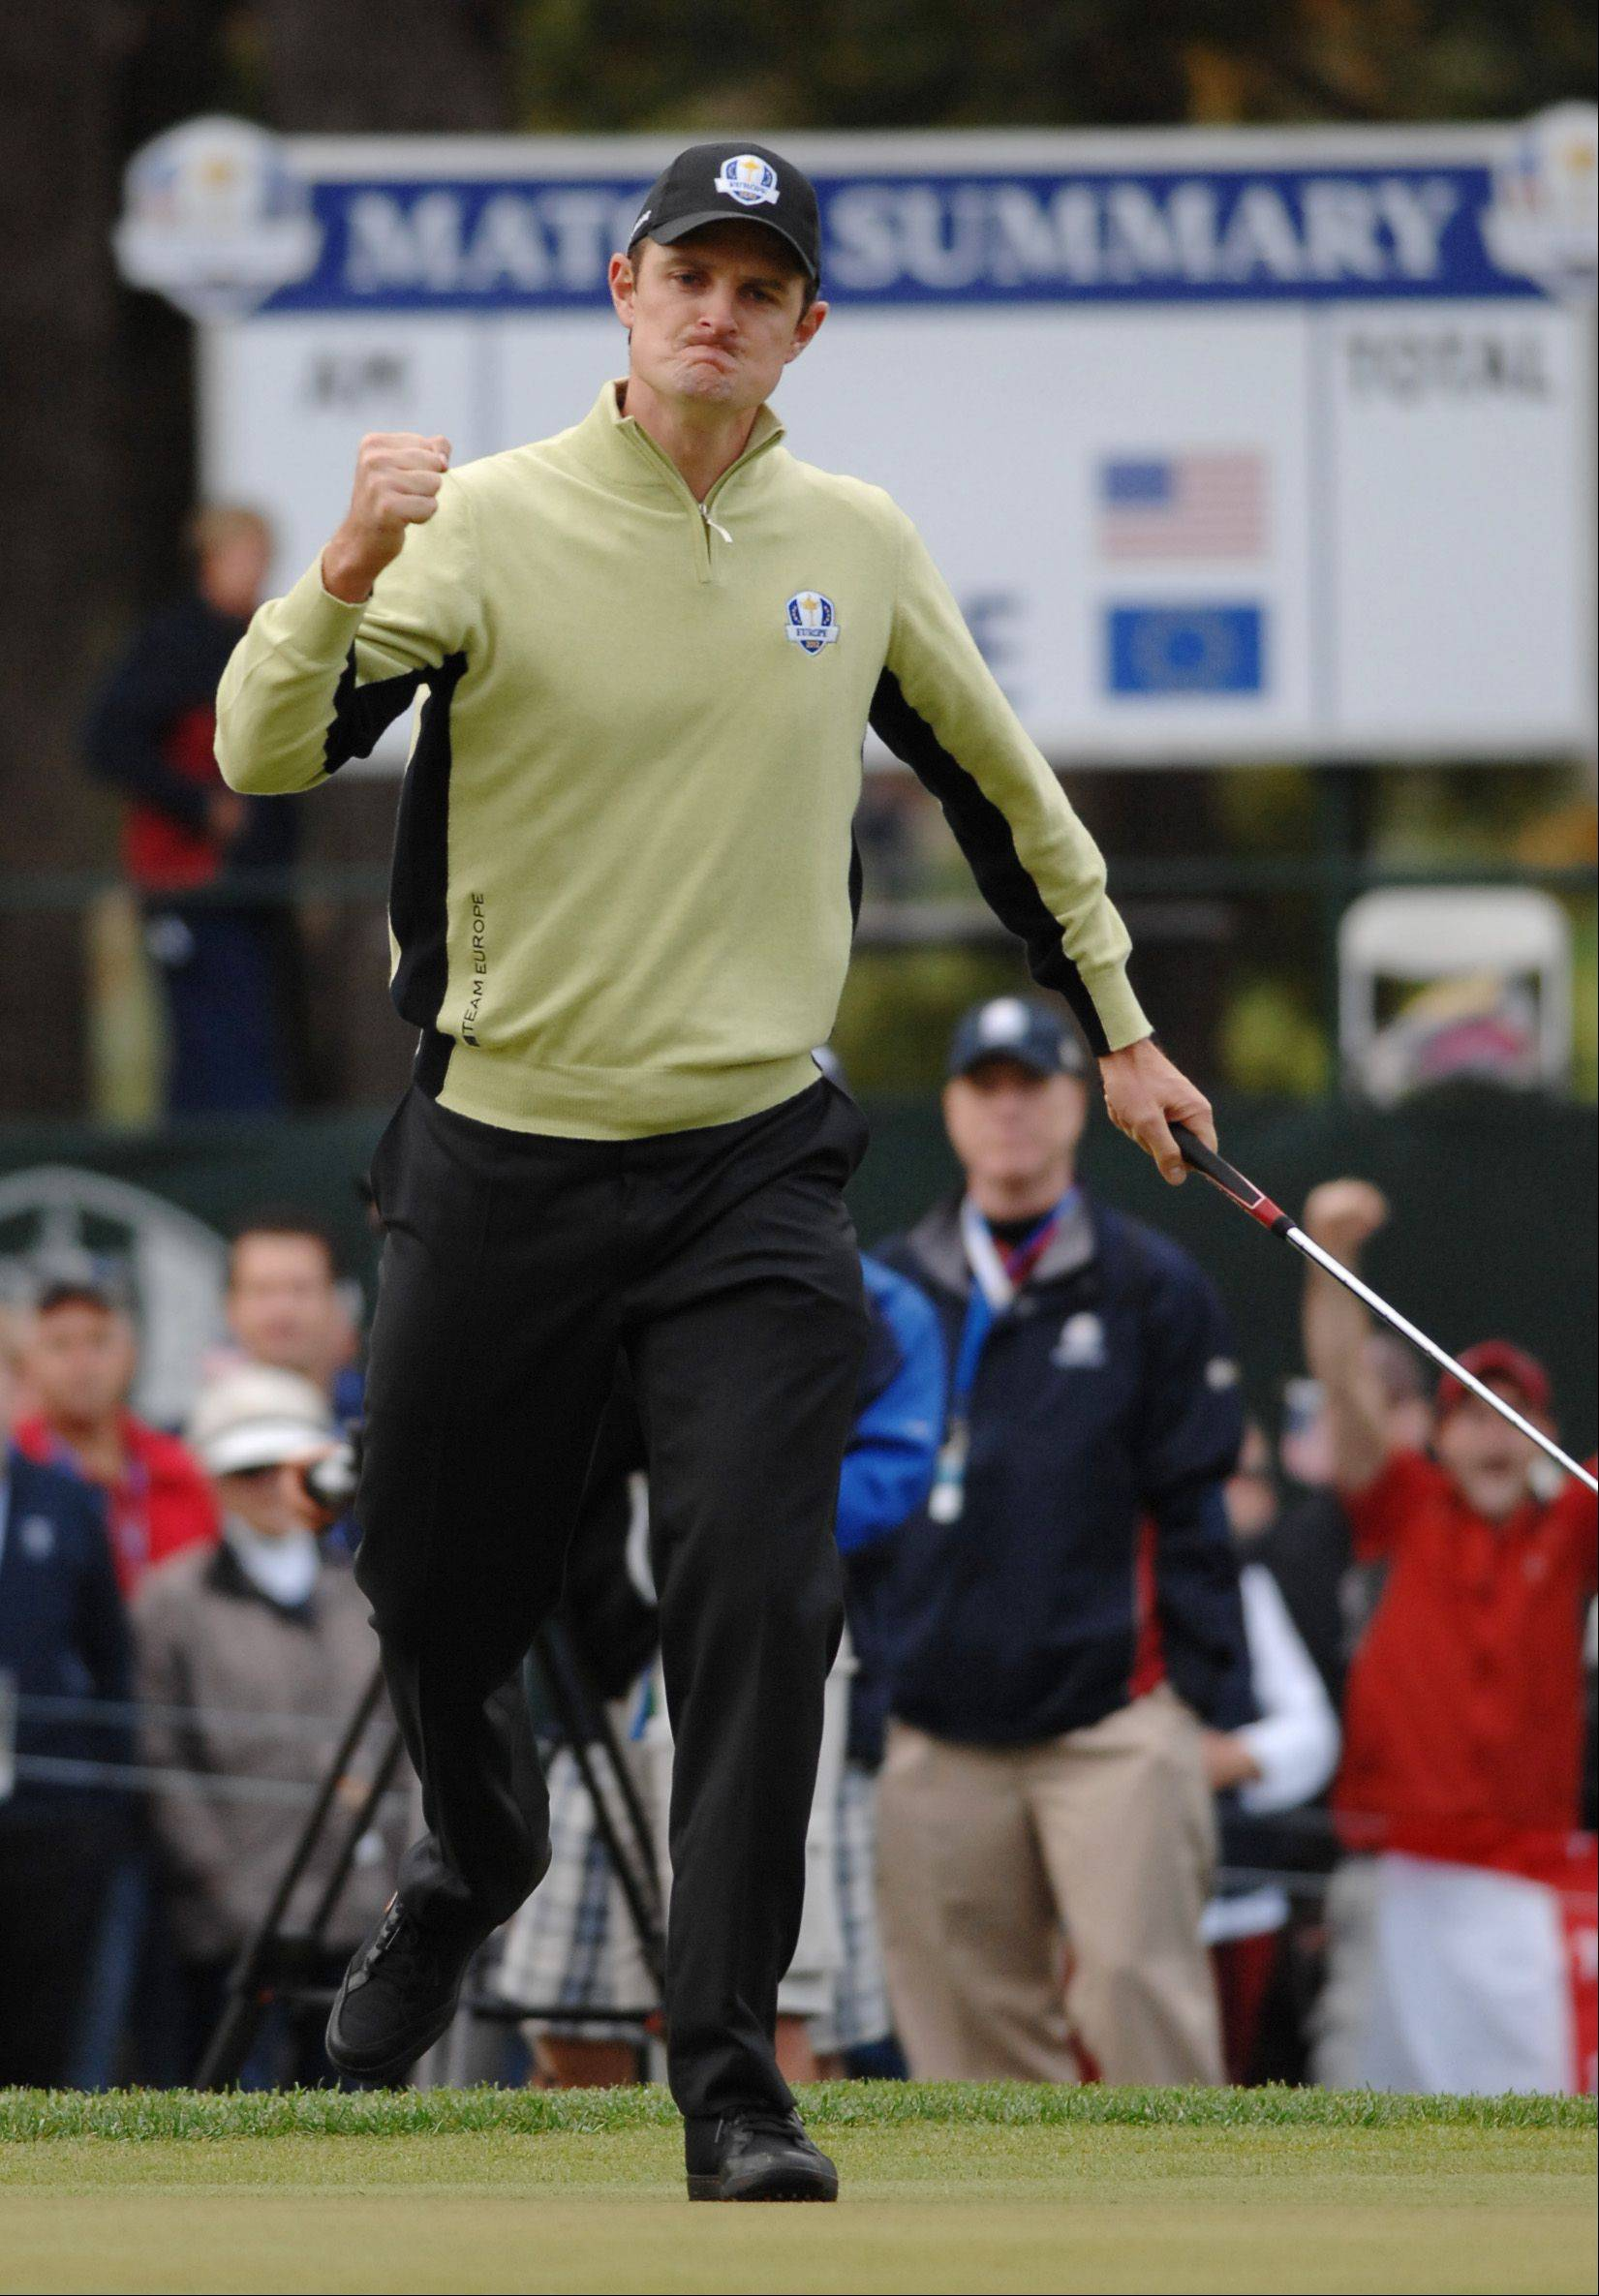 Justin Rose of Team Europe reacts to sinking a putt on 4 Friday morning during the foursome matches.